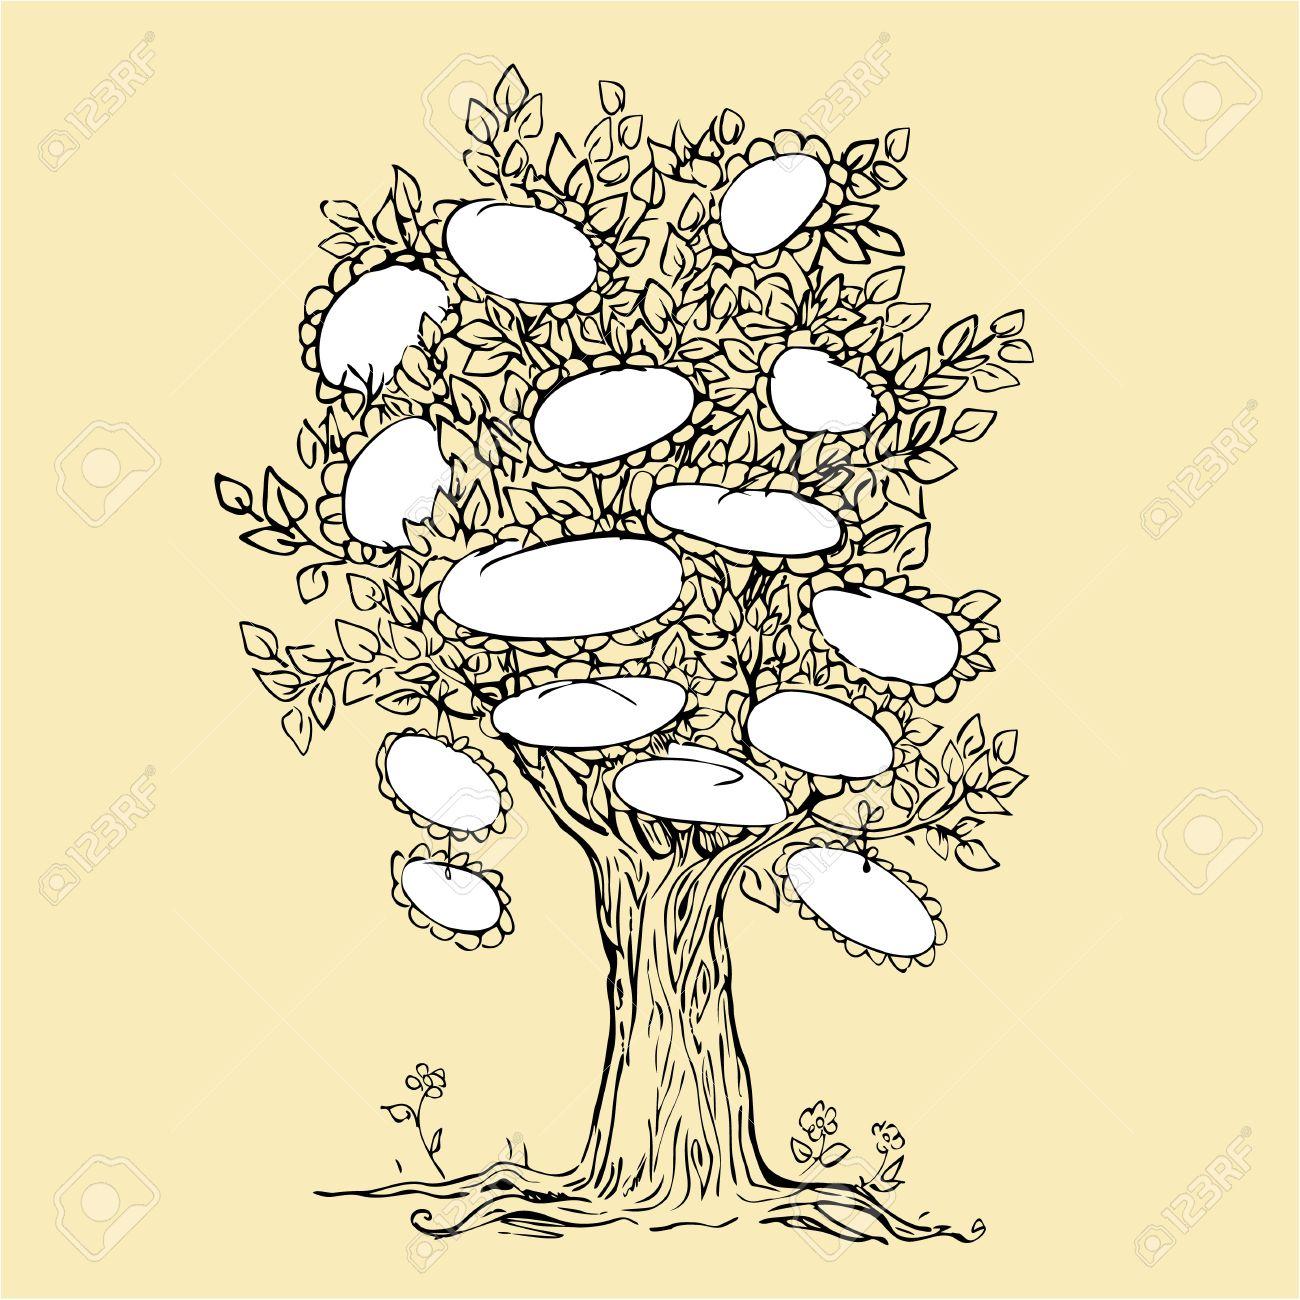 Family tree design with empty frames for text - Sketchy drawing picture Stock Vector - 17451775